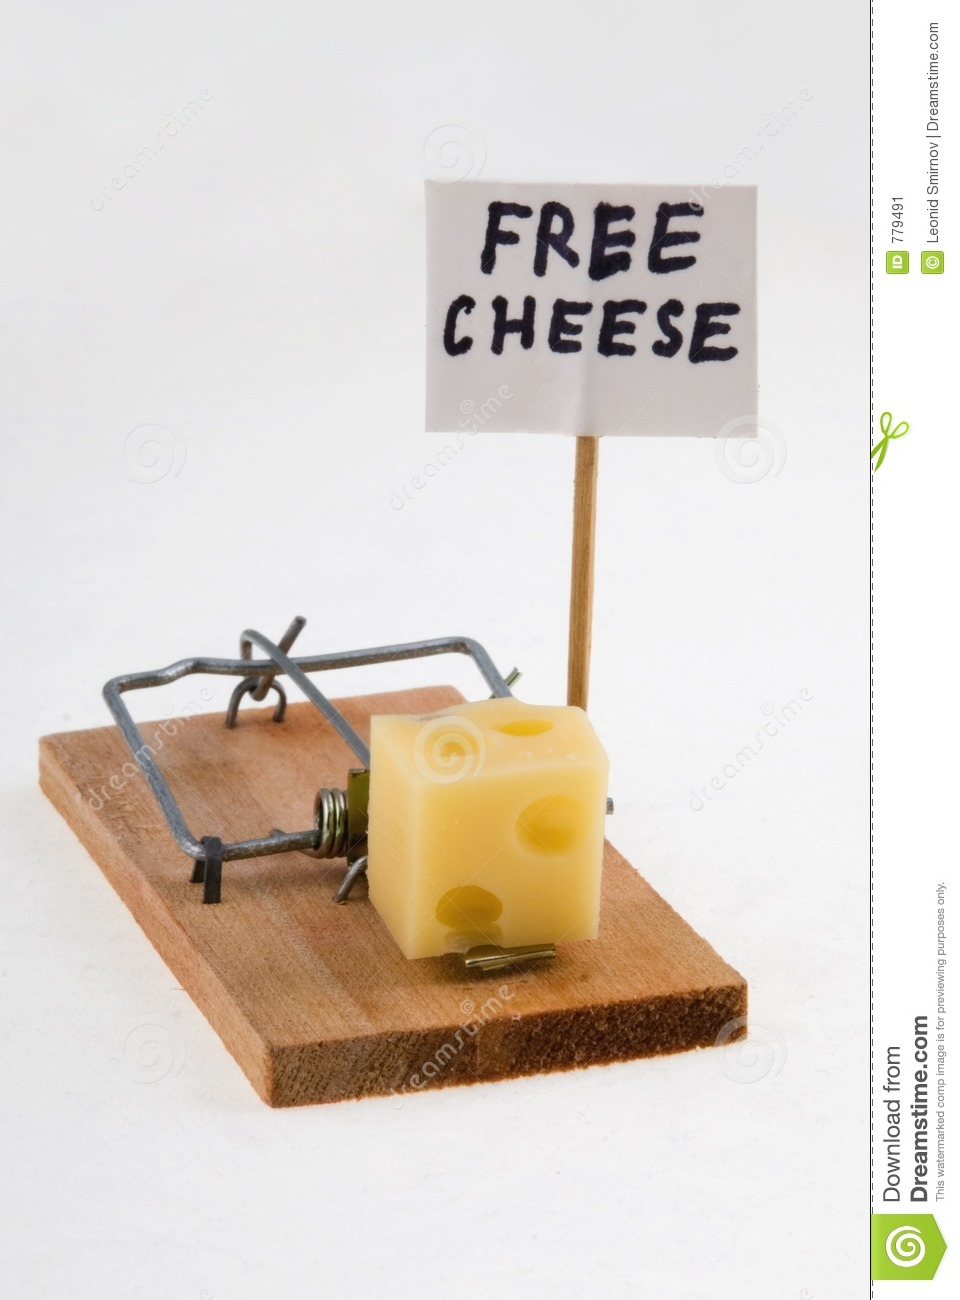 Mouse trap with cheese and Free Cheese sign.